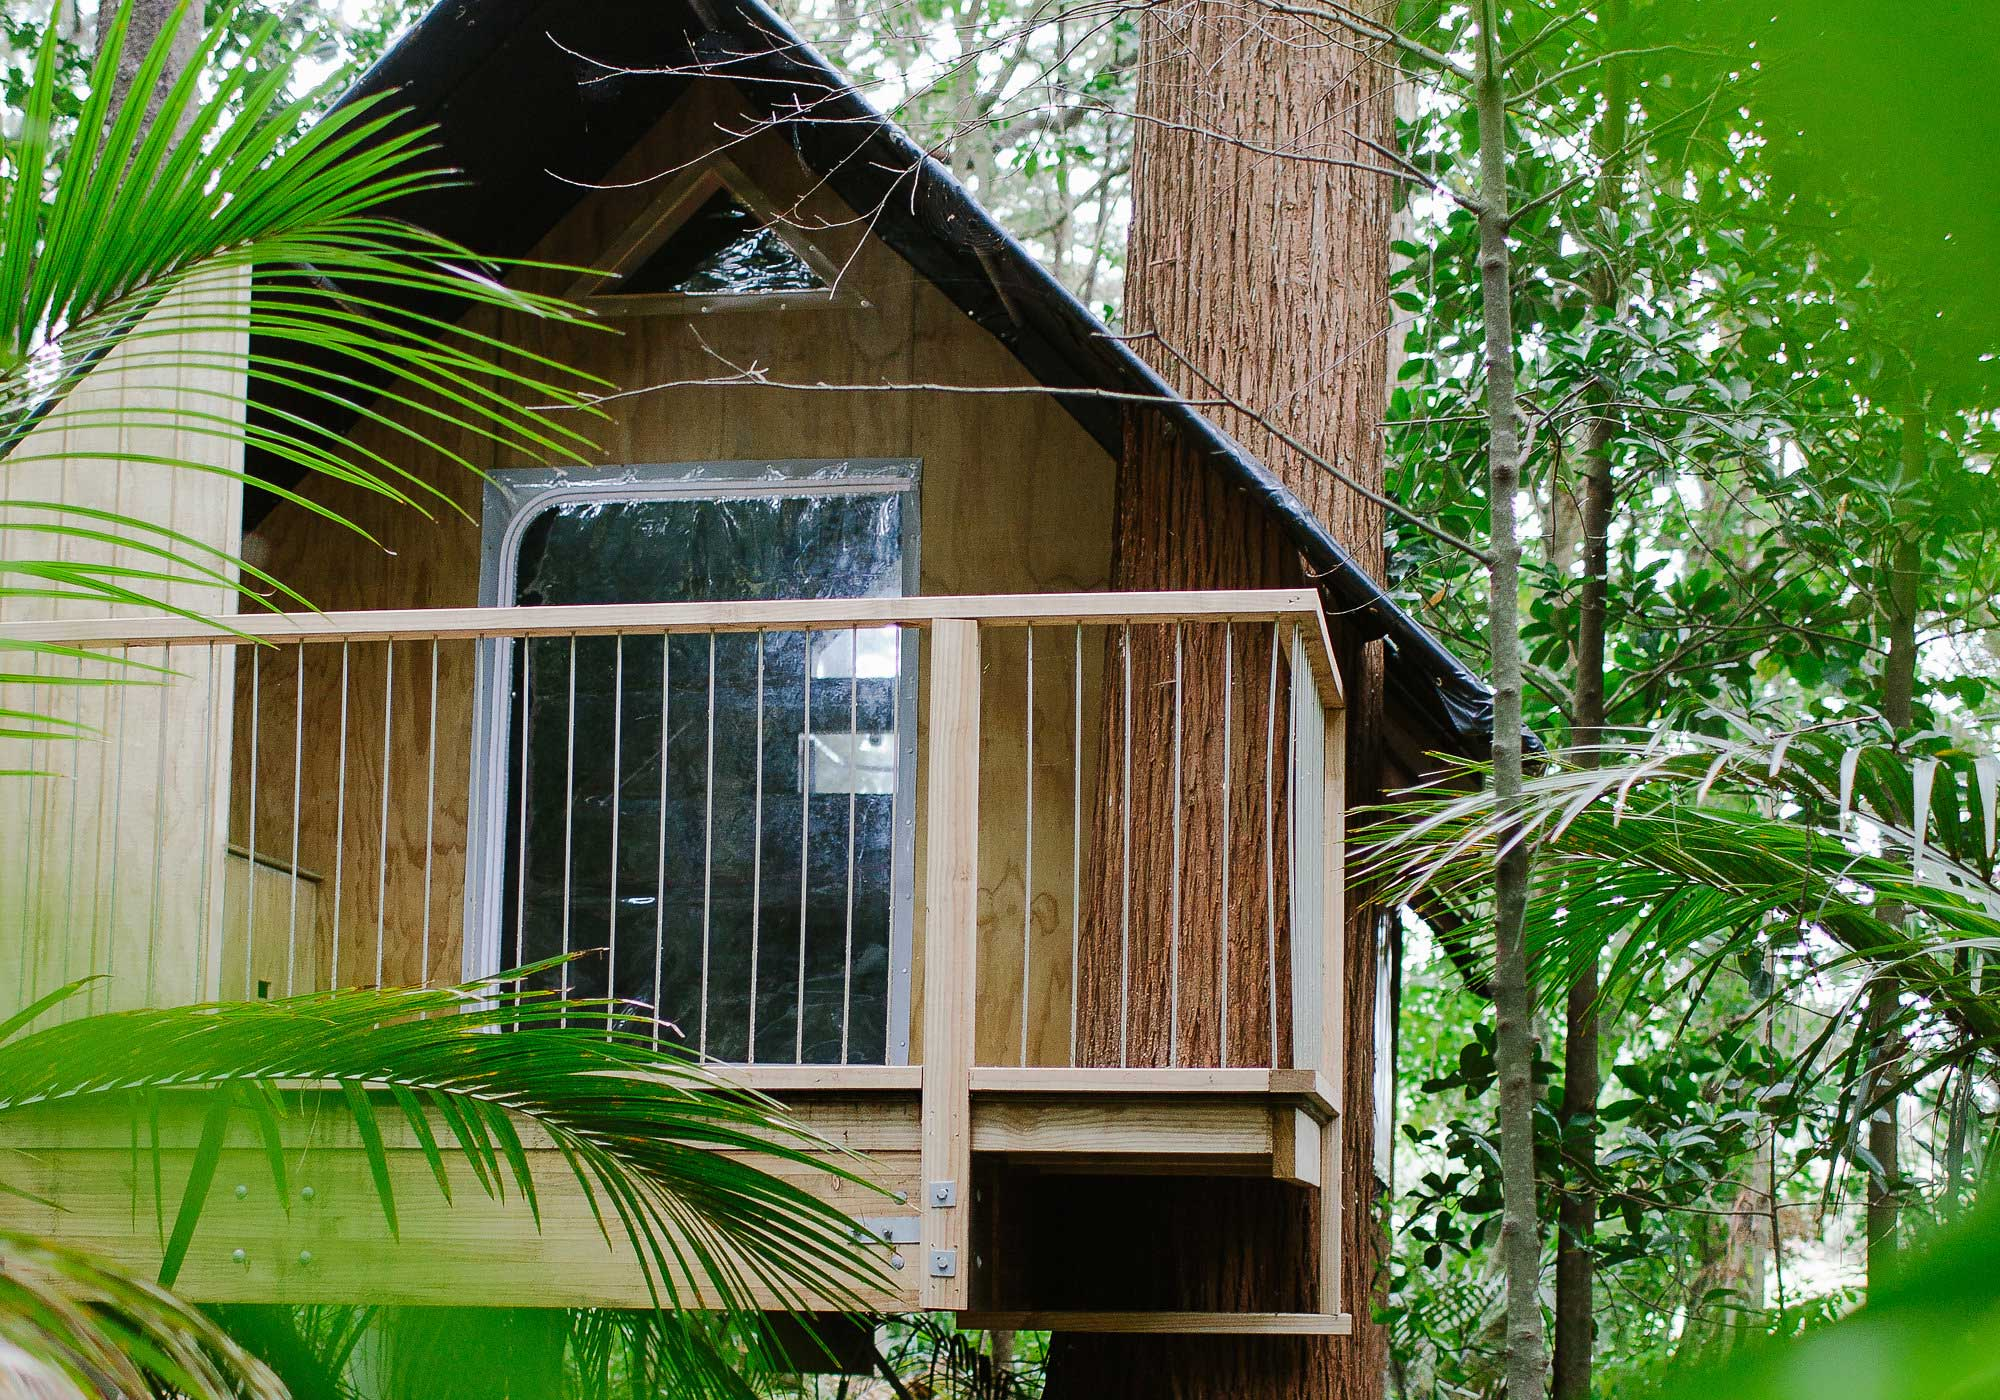 Totara Tree Glam Camping where guests can enjoy the sounds of New Zealand's unique flora and fauna.